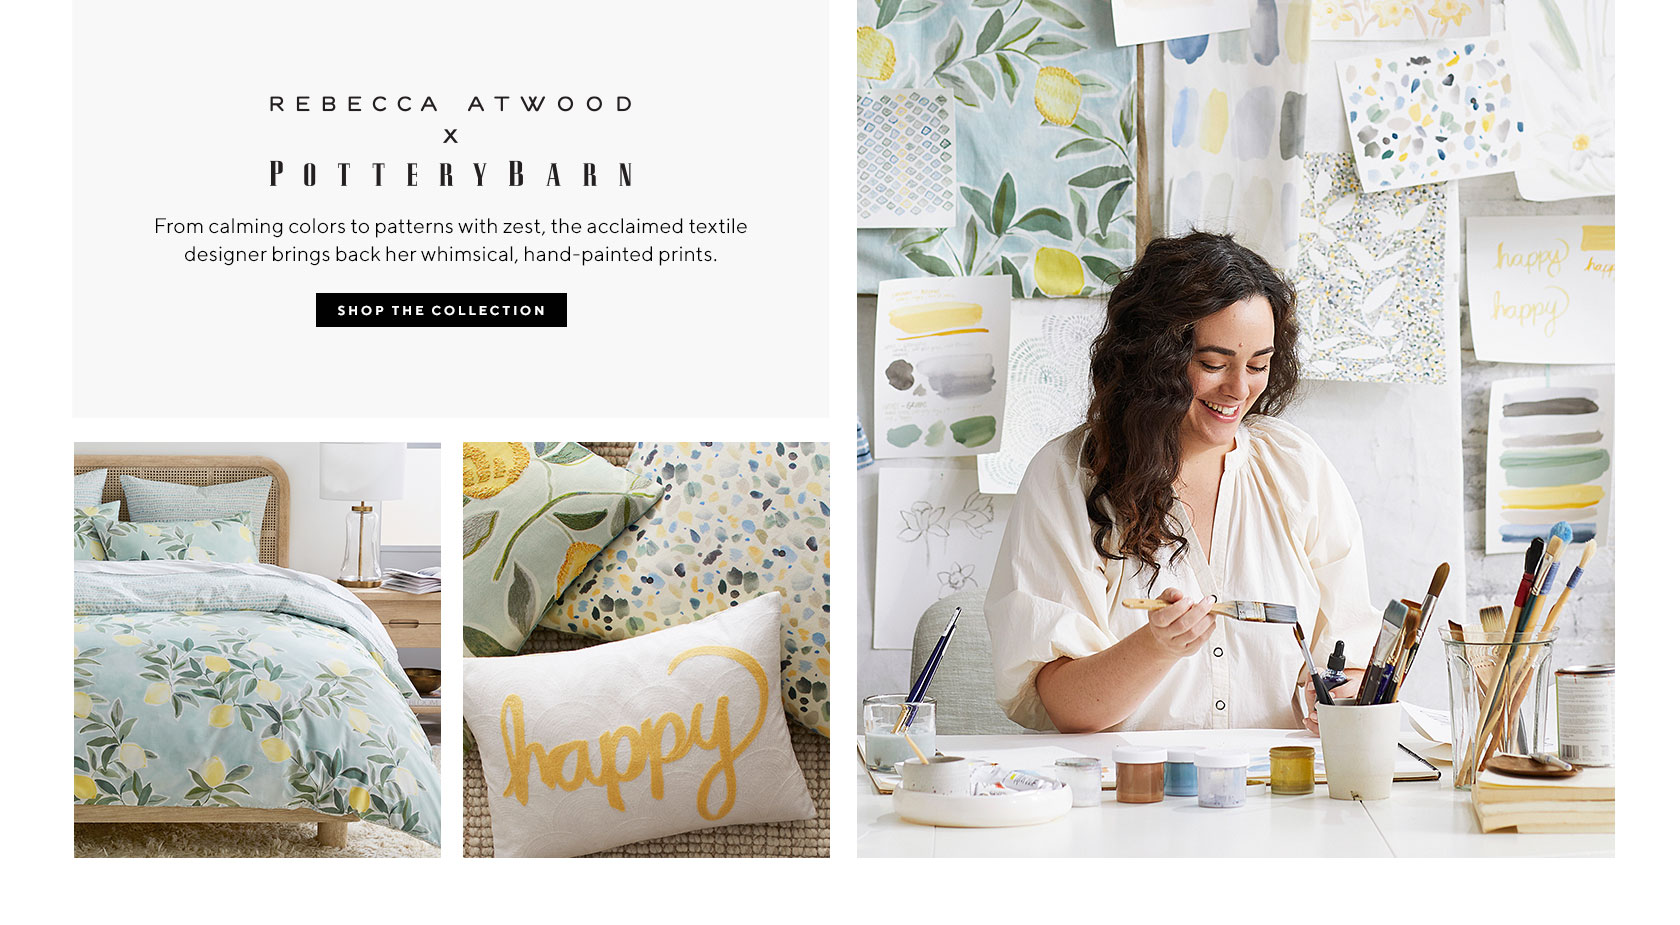 This Weeks Good Things 4.5.21 | Rebecca Atwood x Pottery Barn